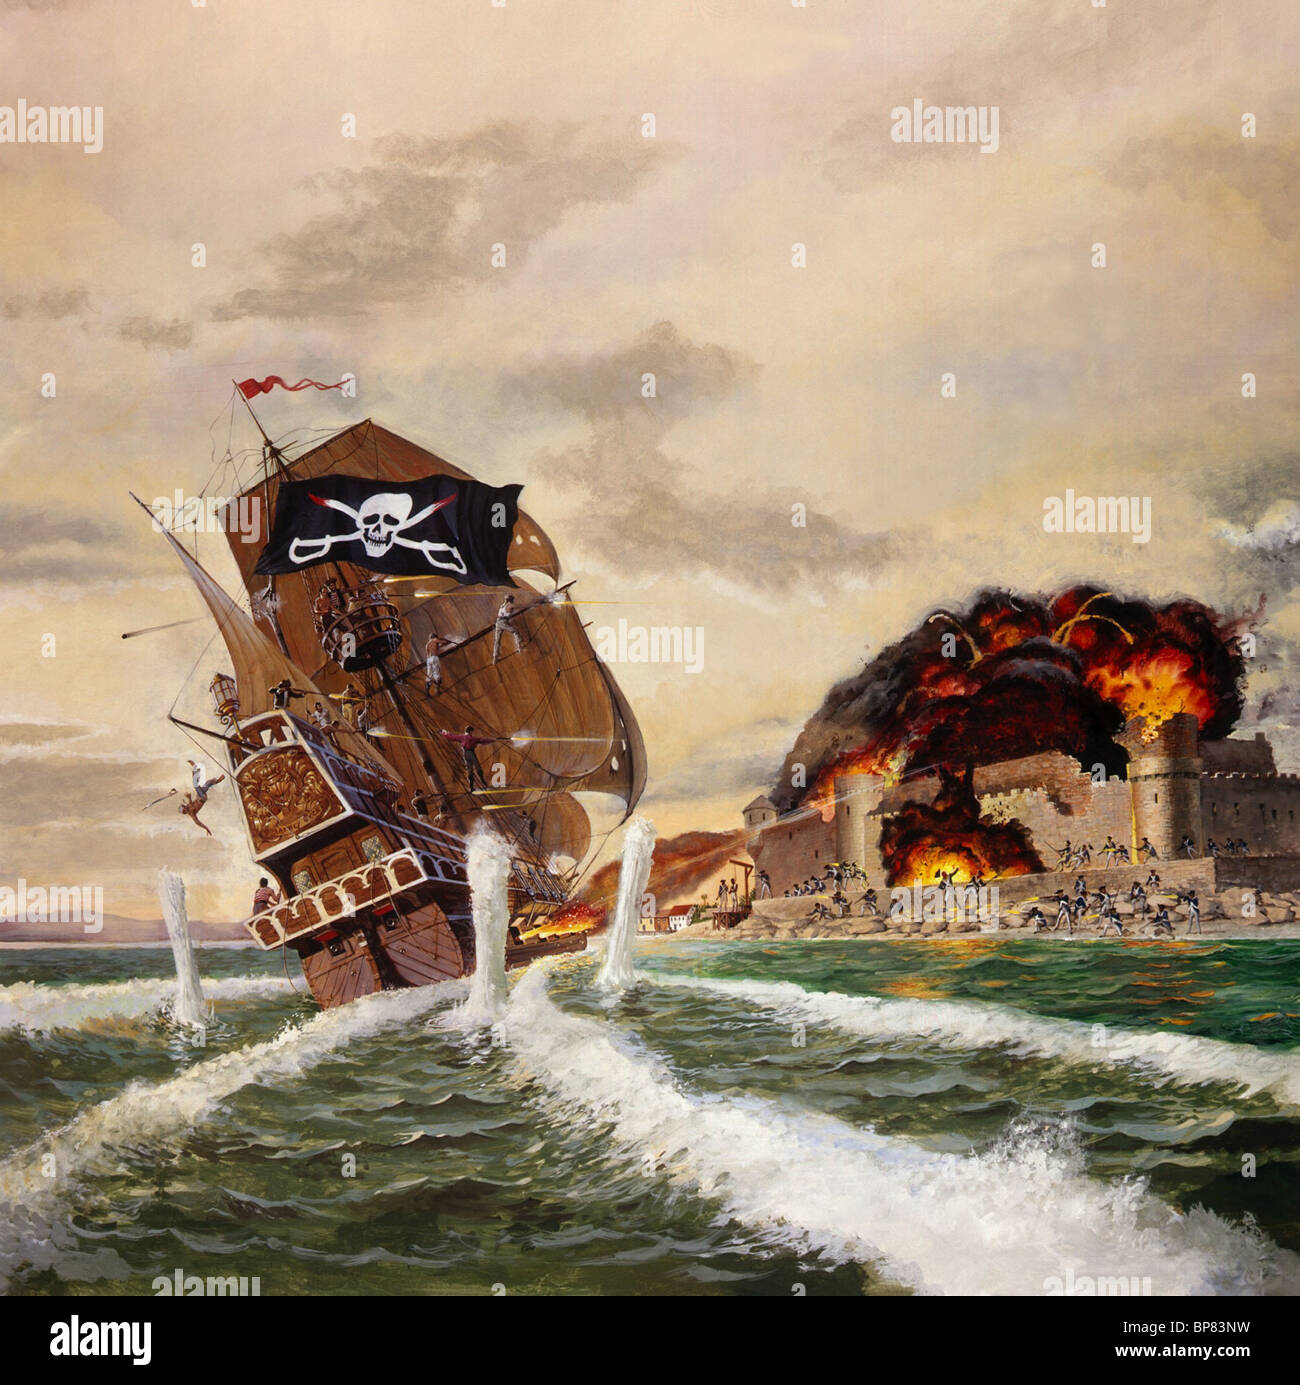 PIRATE SHIP BATTLE ARTWORK SCARLET BUCCANEER; SWASHBUCKLER (1976) - Stock Image